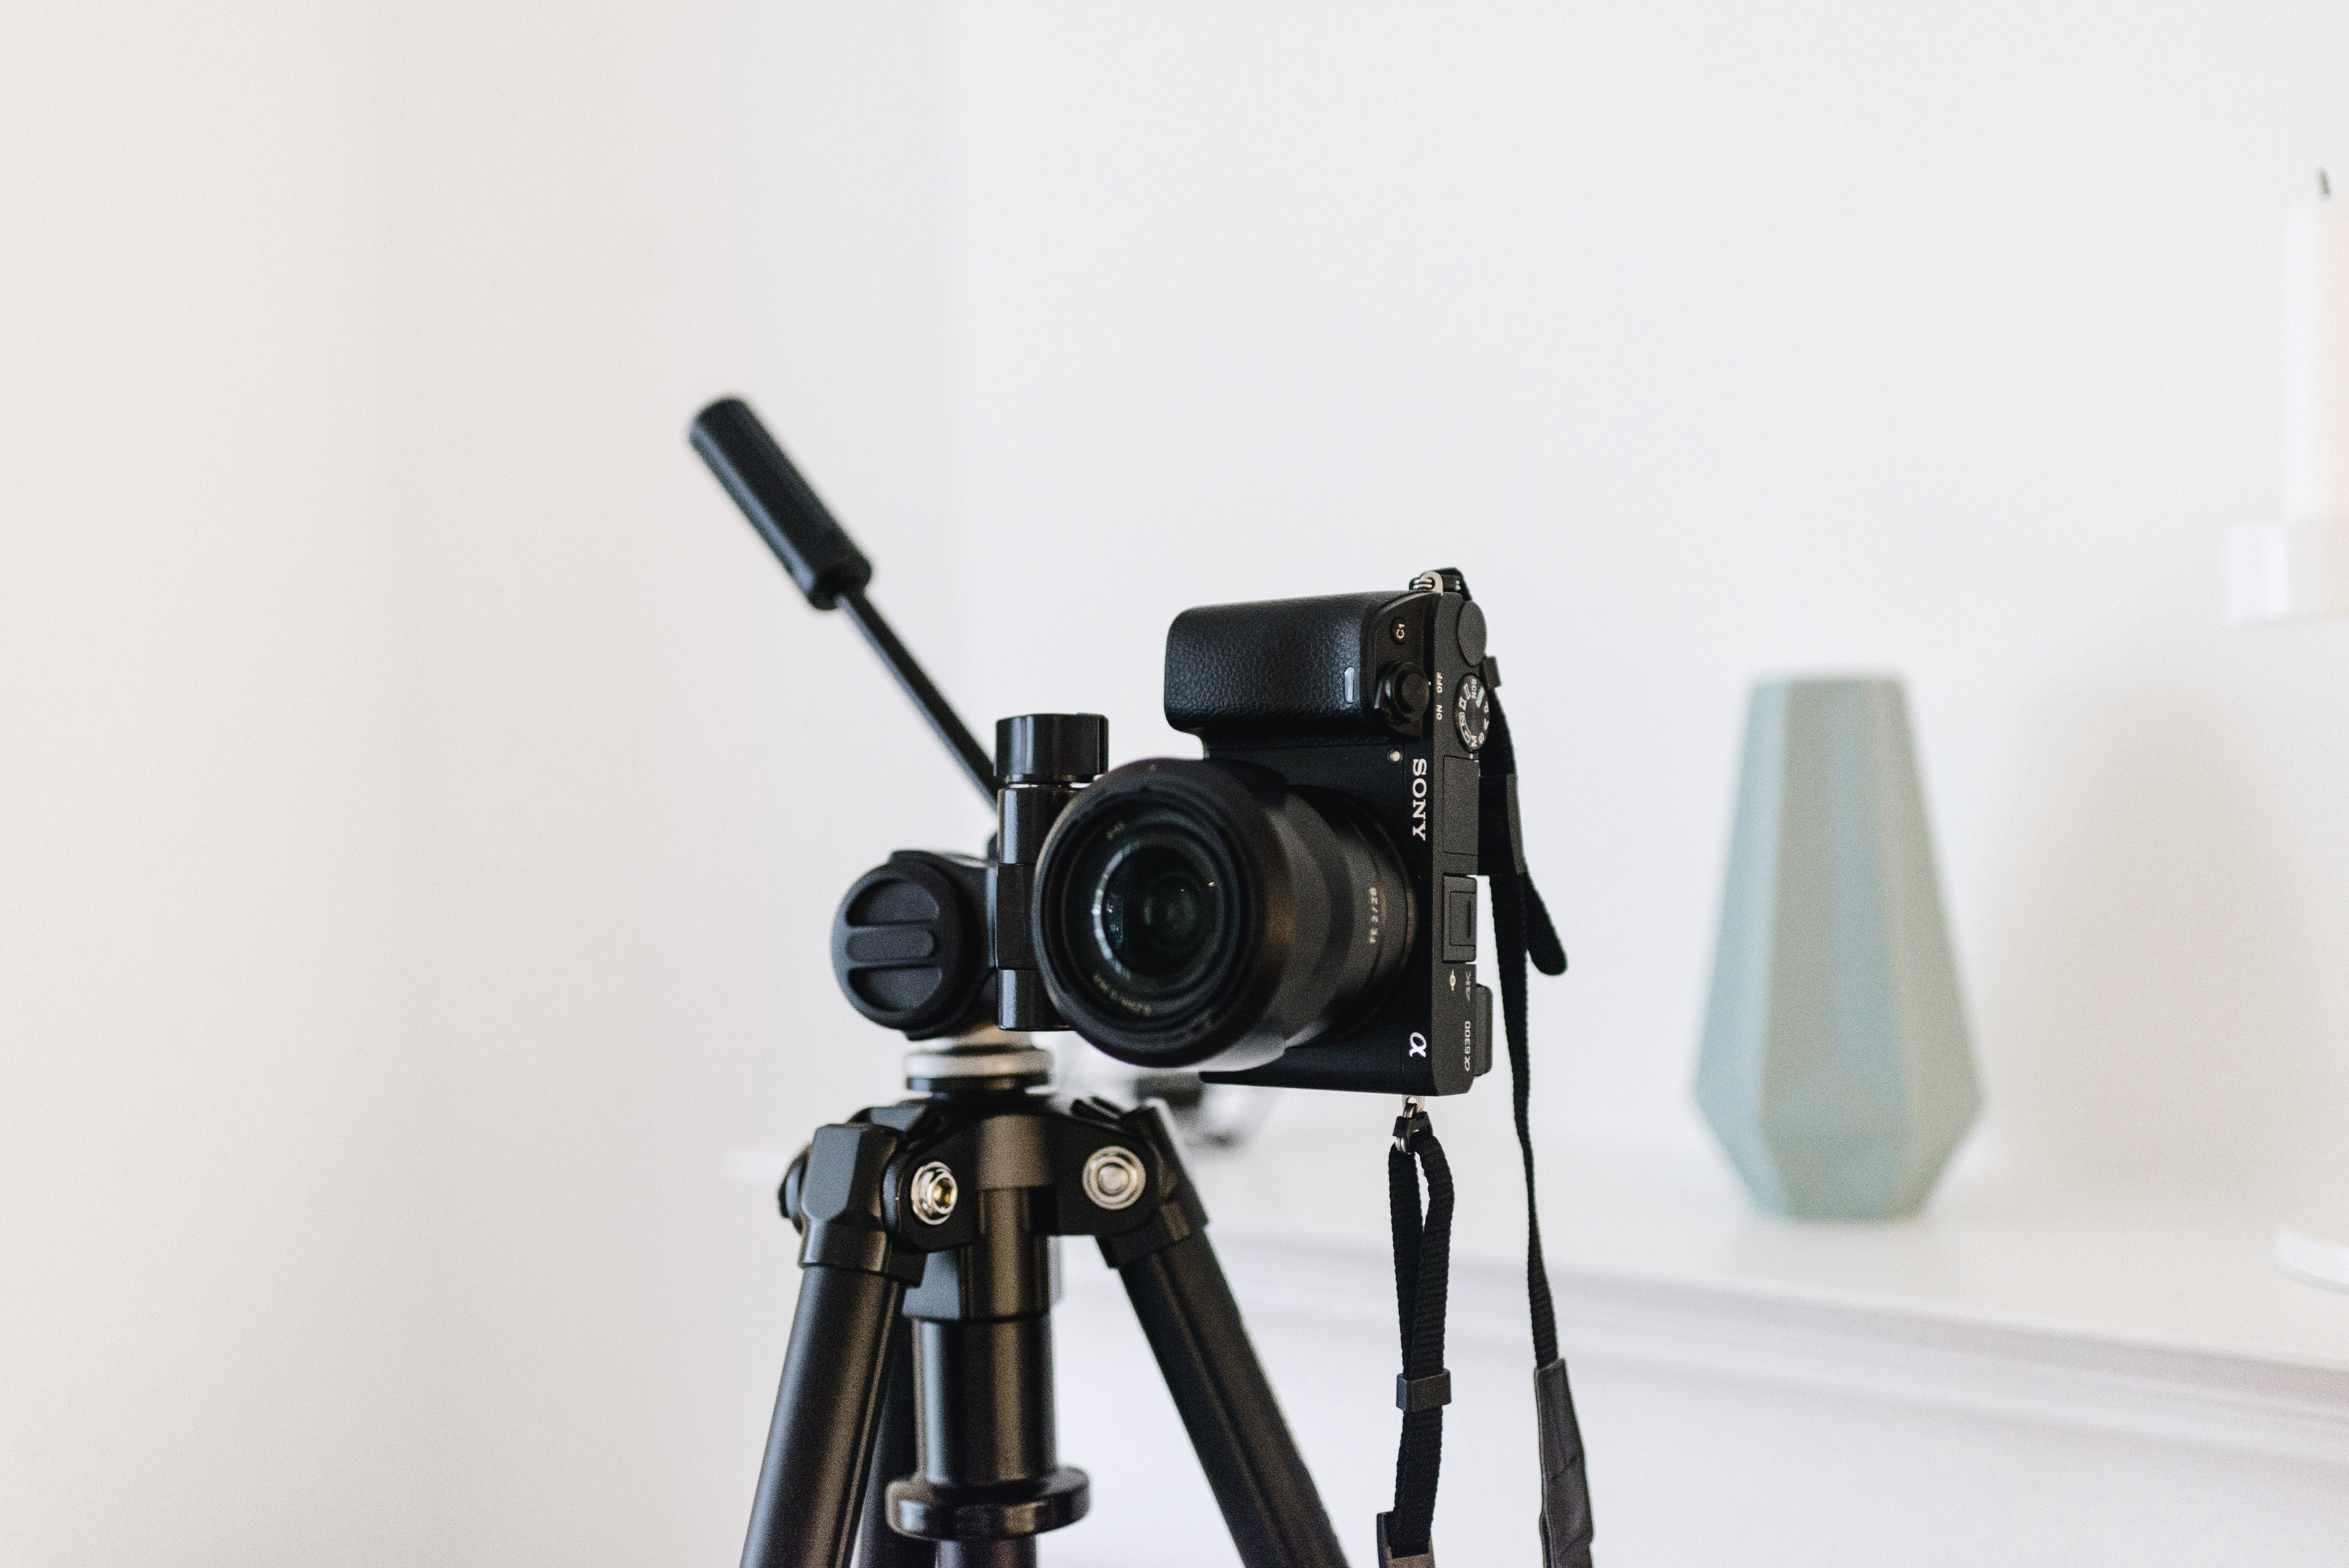 Sony A6300 with tripod | self-portrait photography tips and tricks